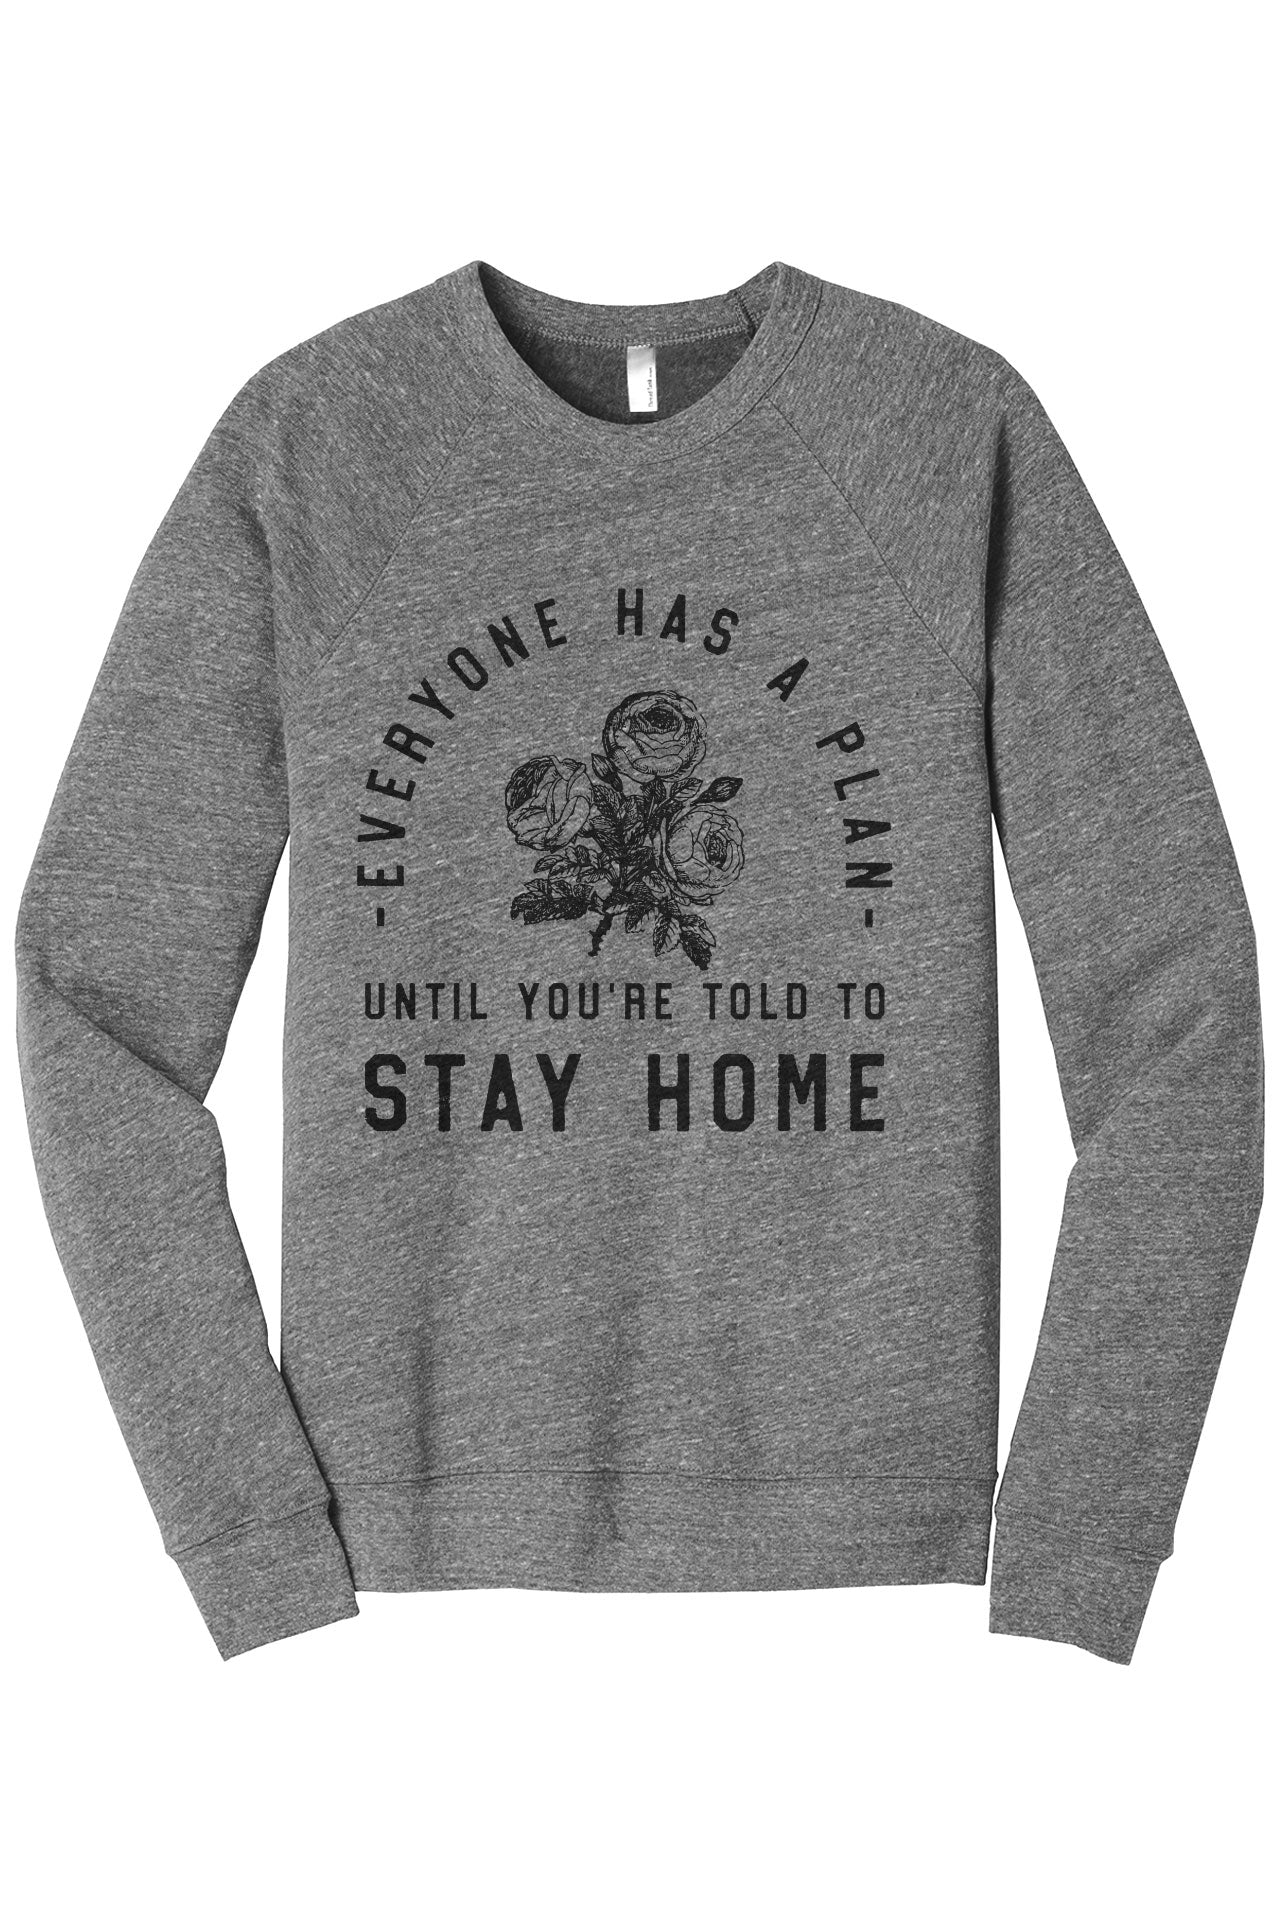 Until You're Told To Stay Home Women's Cozy Fleece Longsleeves Sweater Rouge Closeup Details